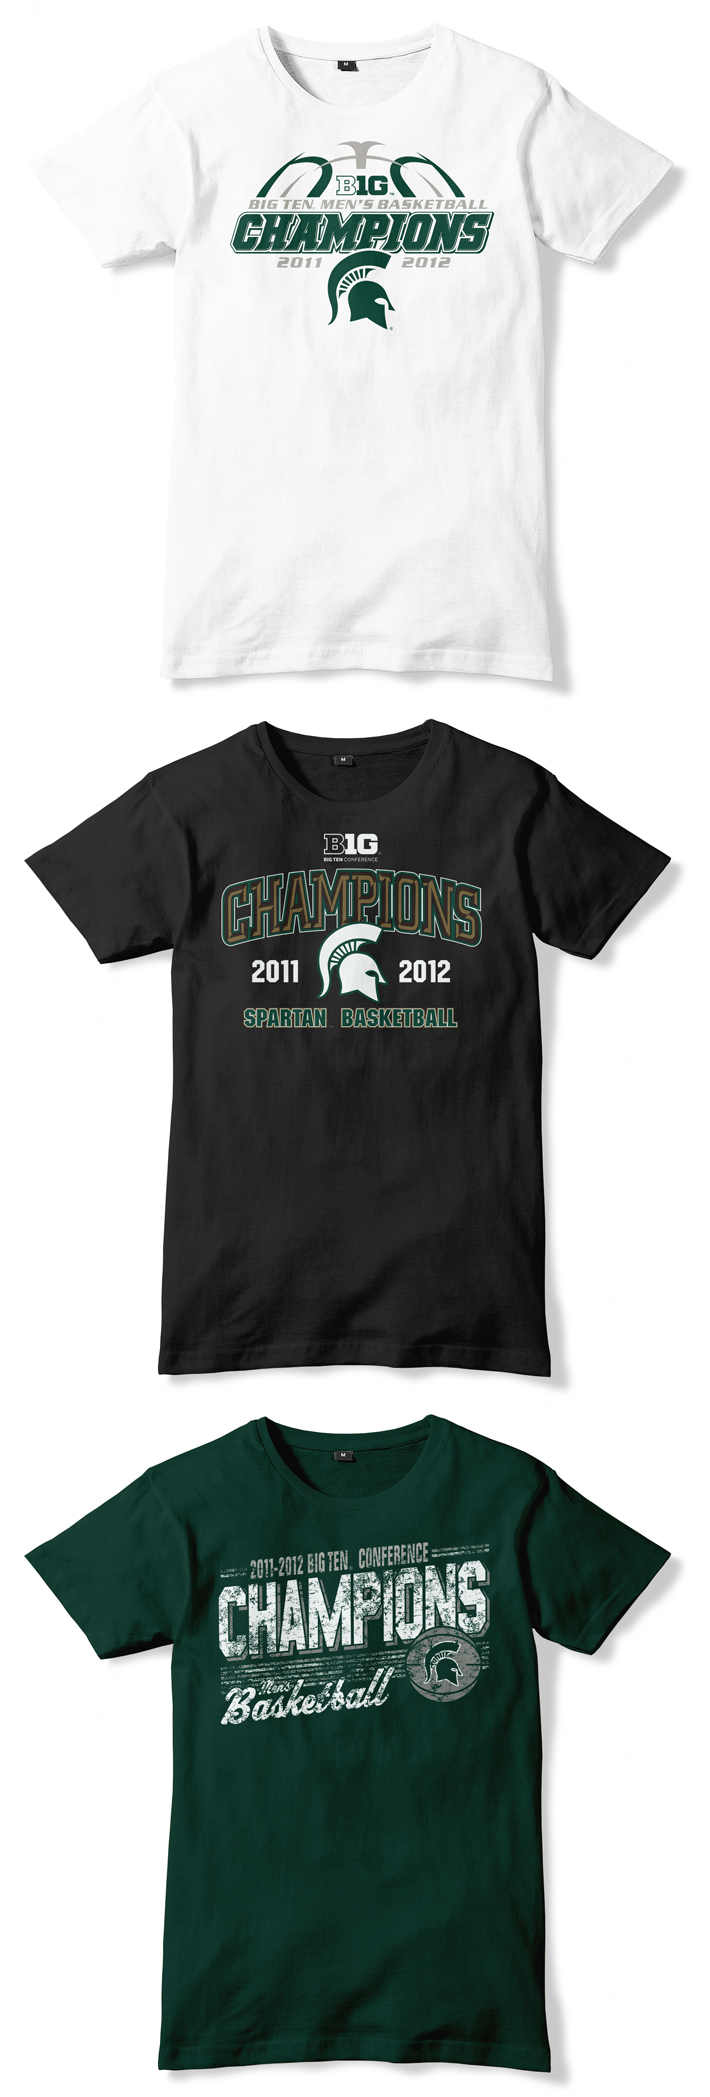 msu-bb-champs-tees-2